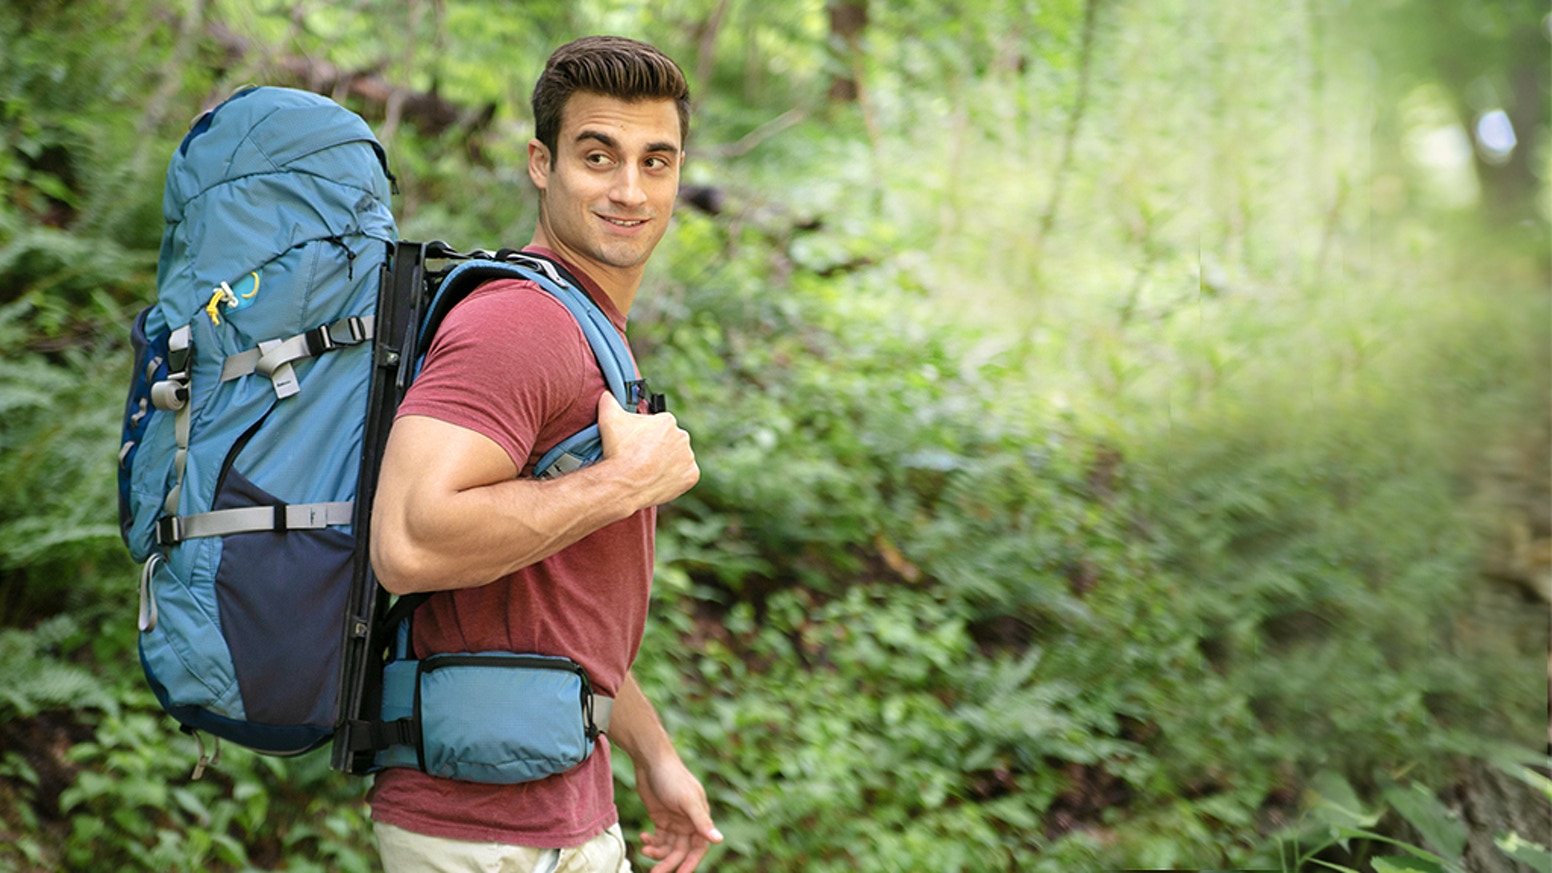 Reduce impact forces of walking or running by up to 86% with one of the biggest backpack innovations in decades! Now on Indiegogo In Demand